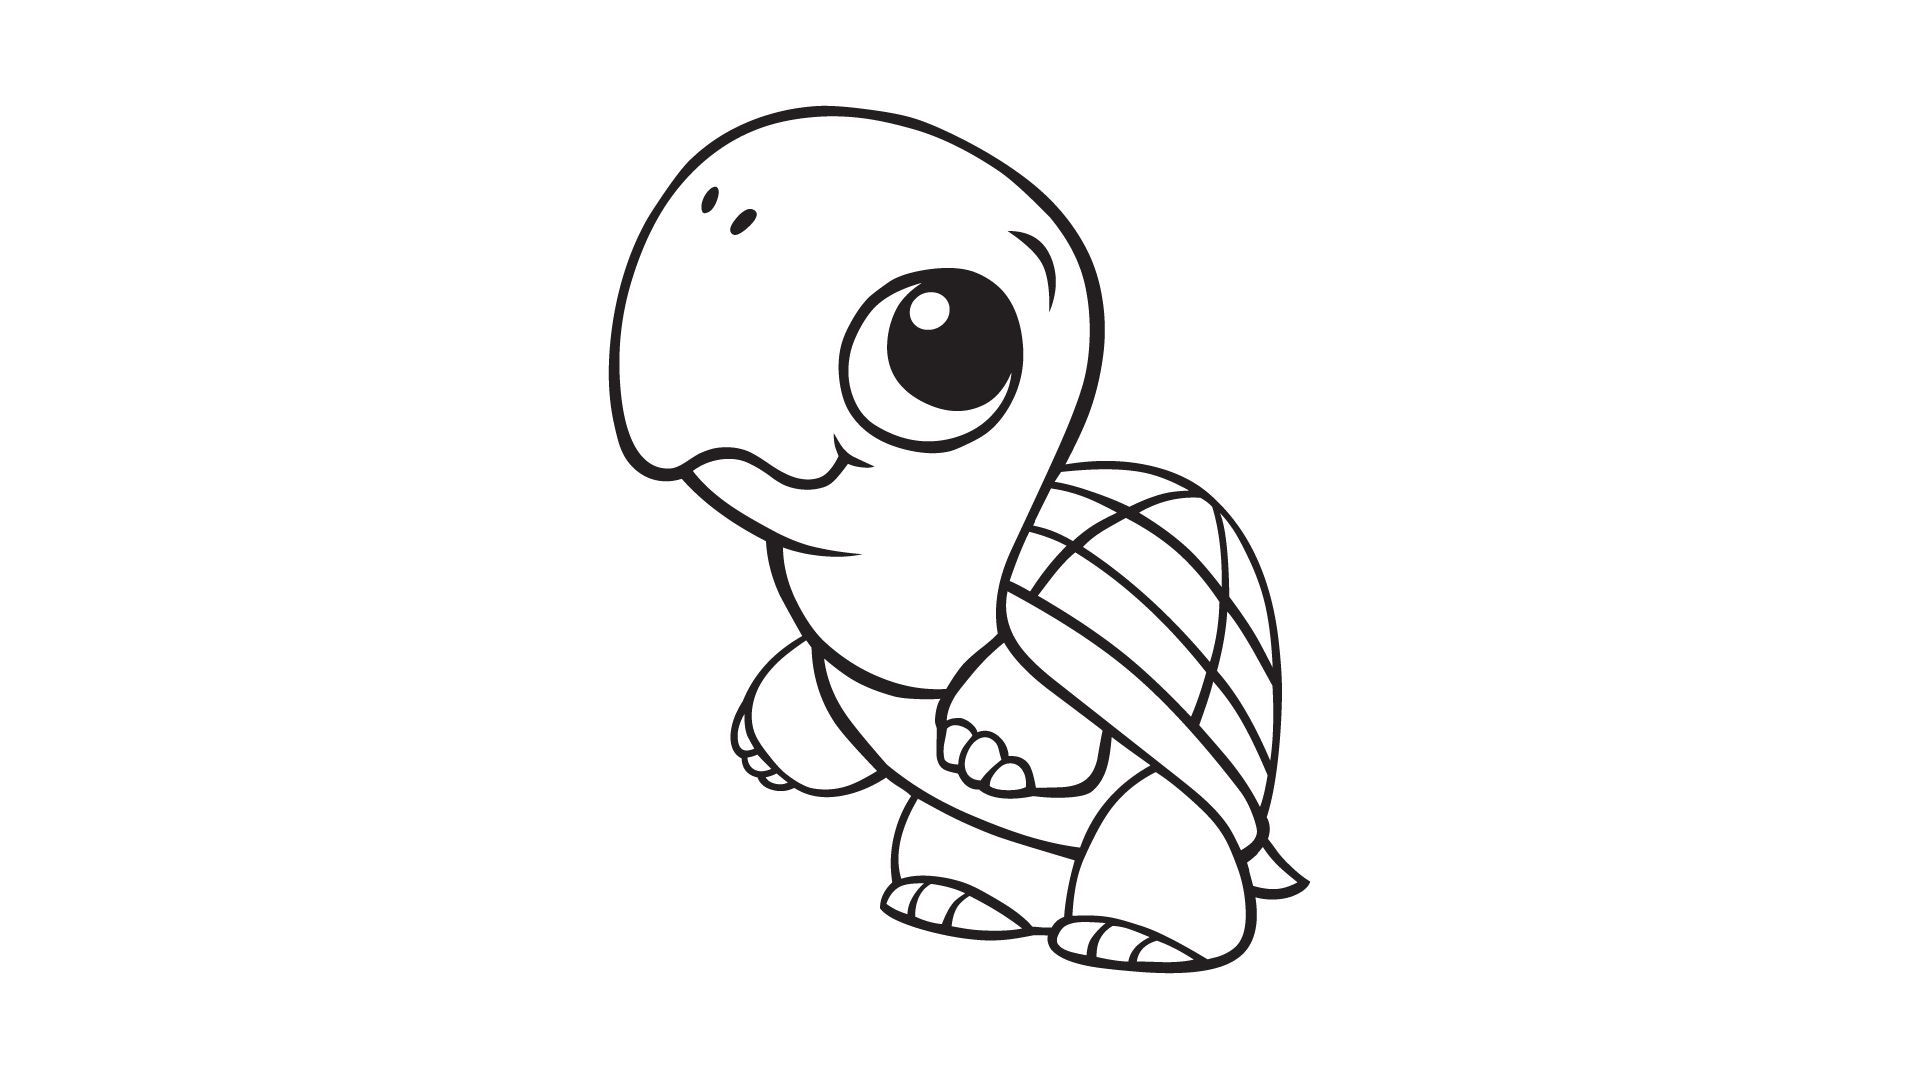 coloring pages of baby penguins | Baby Turtle Coloring Pages Baby ...